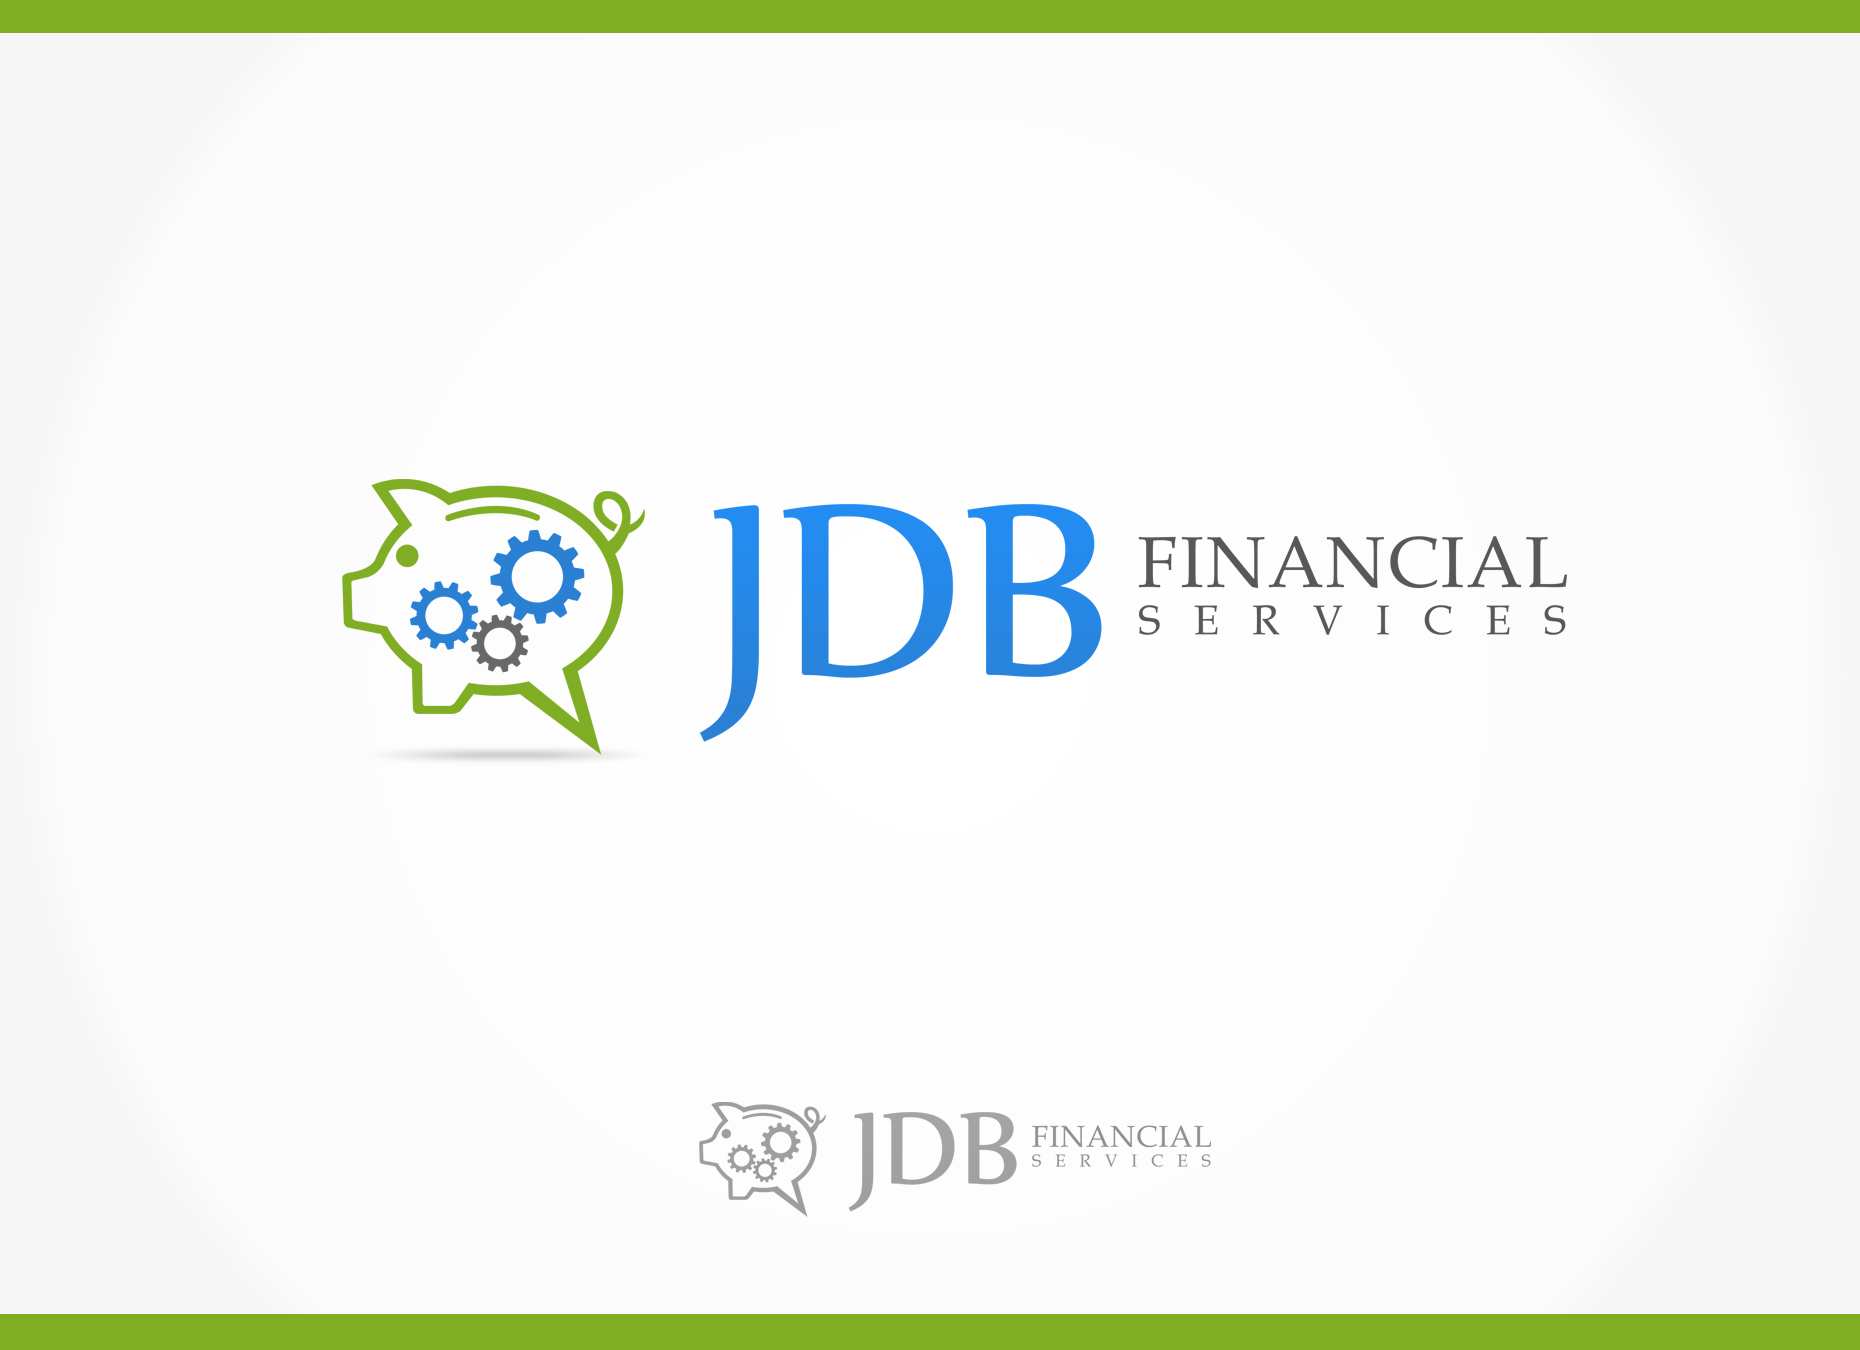 Logo Design by omARTist - Entry No. 137 in the Logo Design Contest Unique Logo Design Wanted for JDB Financial Services.